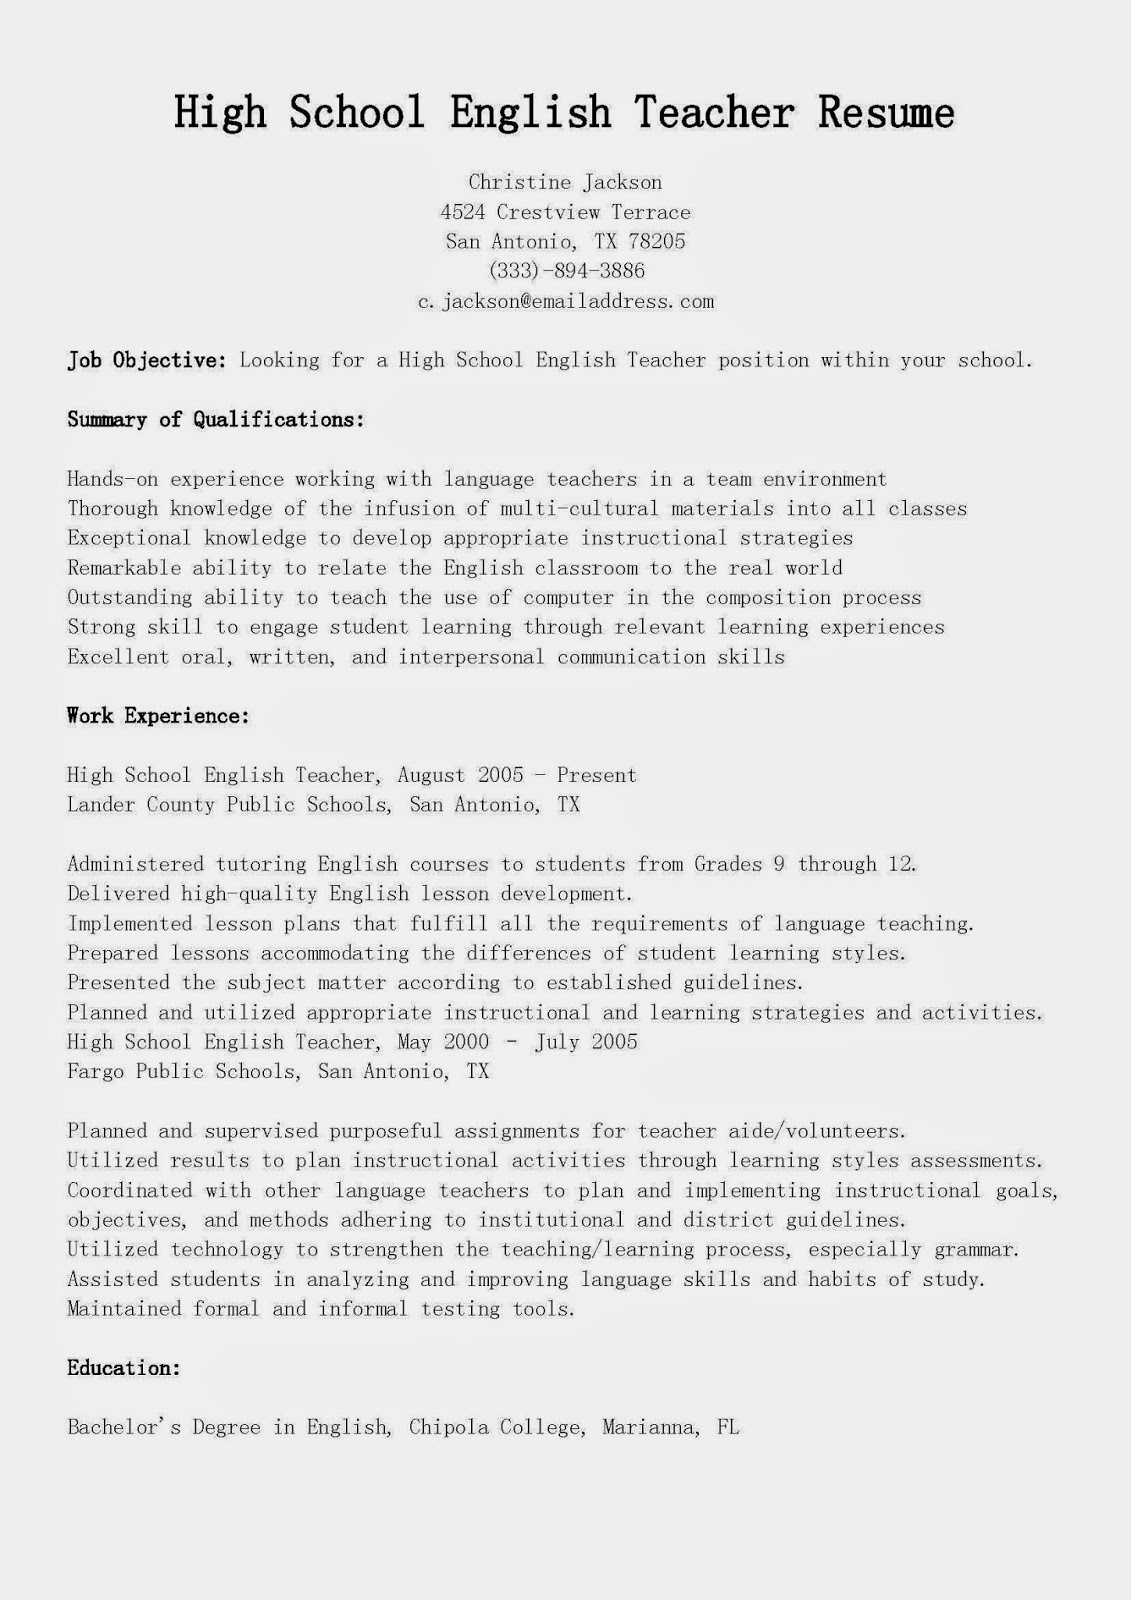 Resume samples high school english teacher resume sample for Sample resume of a teacher in high school